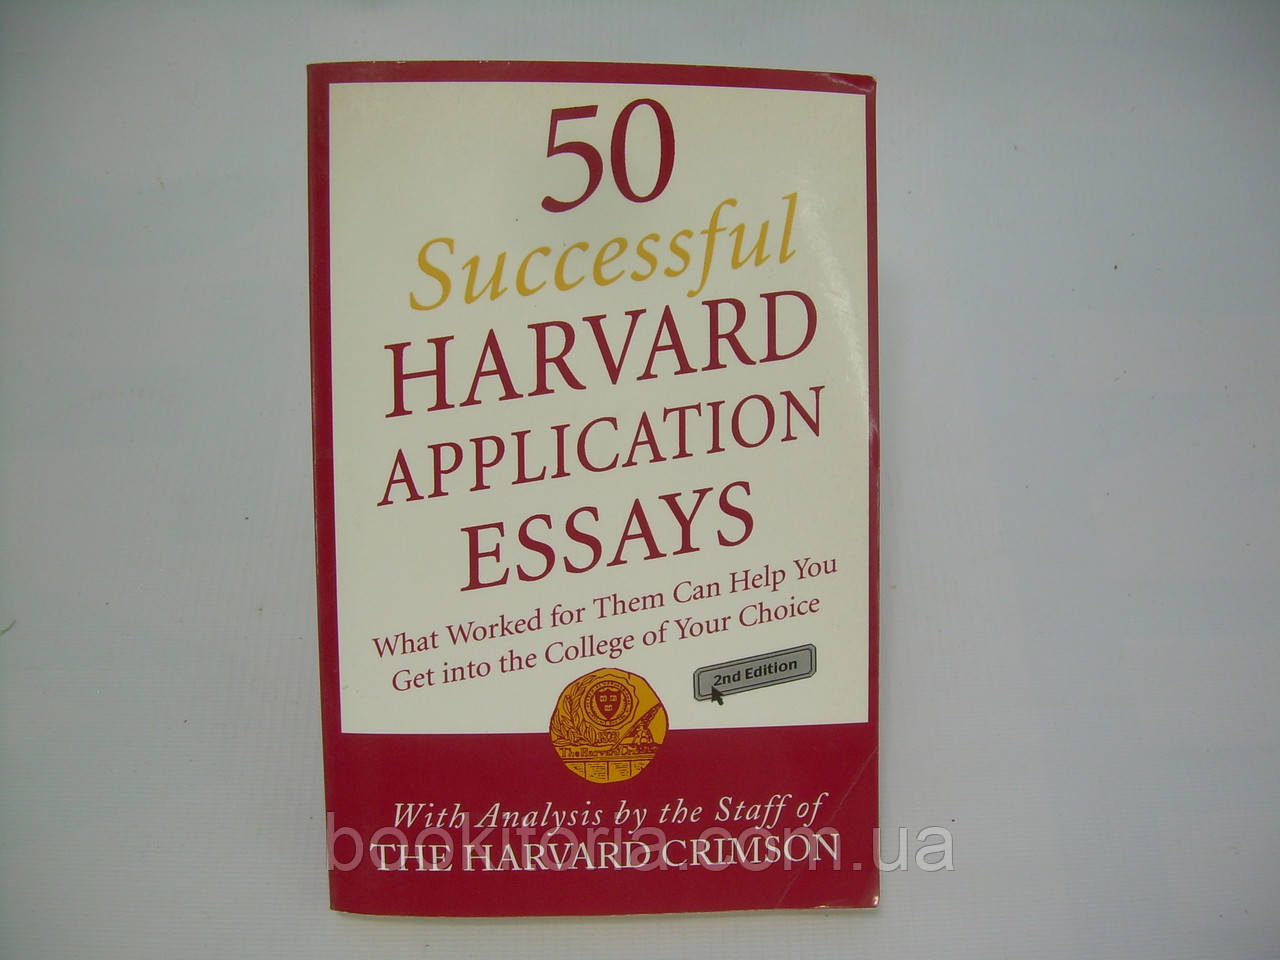 50 Successful Harvard Application Essays:What Worked for Them Can Help You Get into the College (б/у